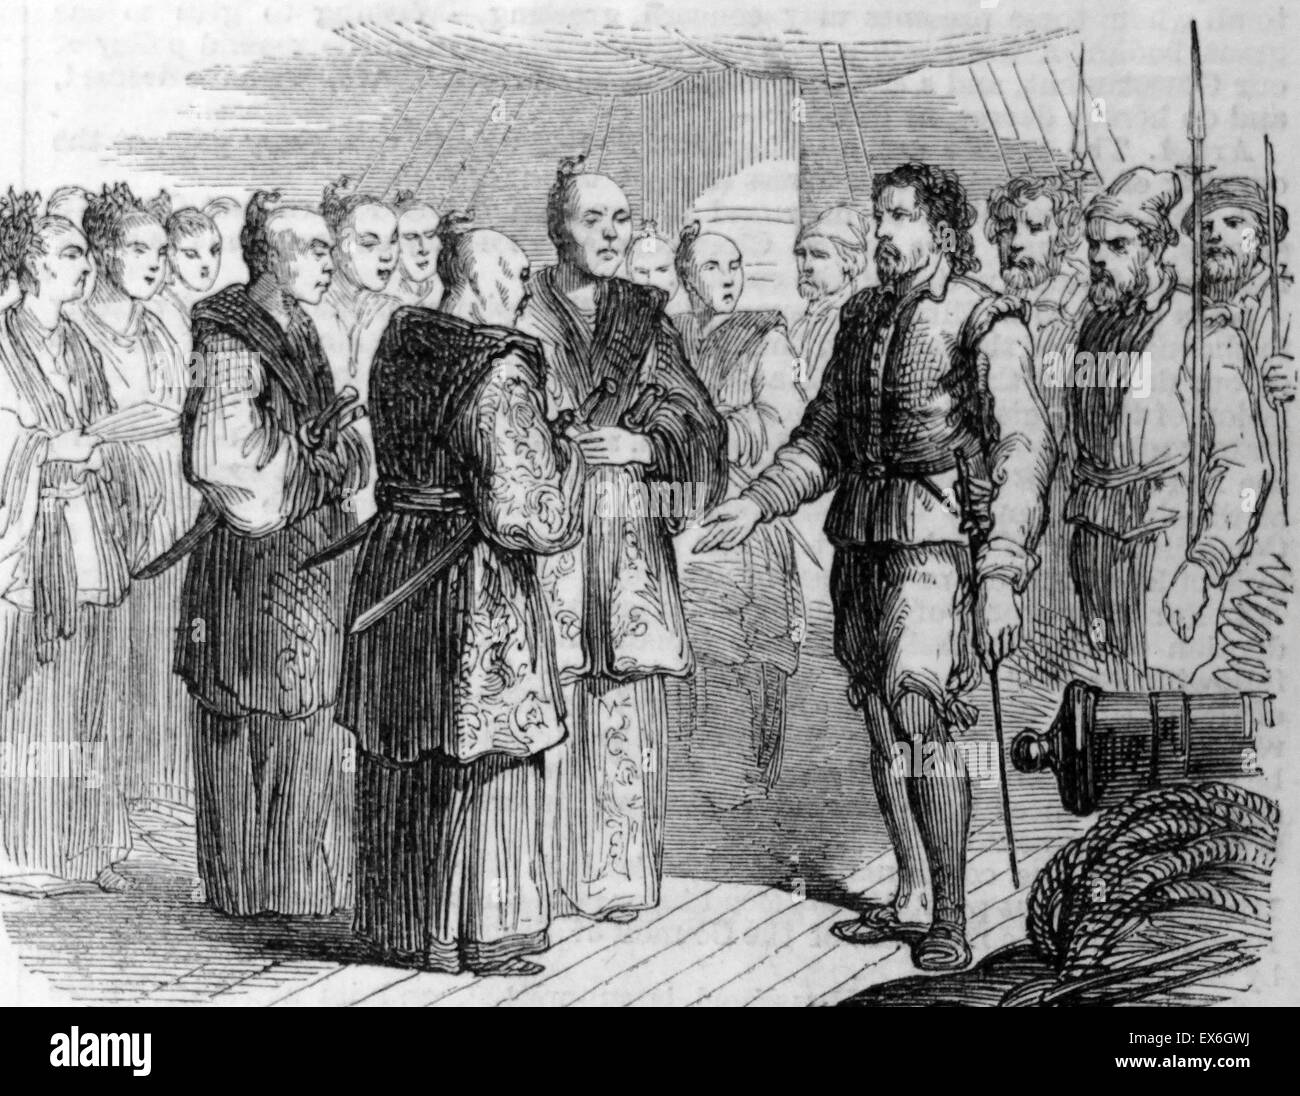 Engraving depicting the arrival of the first Englishman in Japan. Dated 1860 - Stock Image